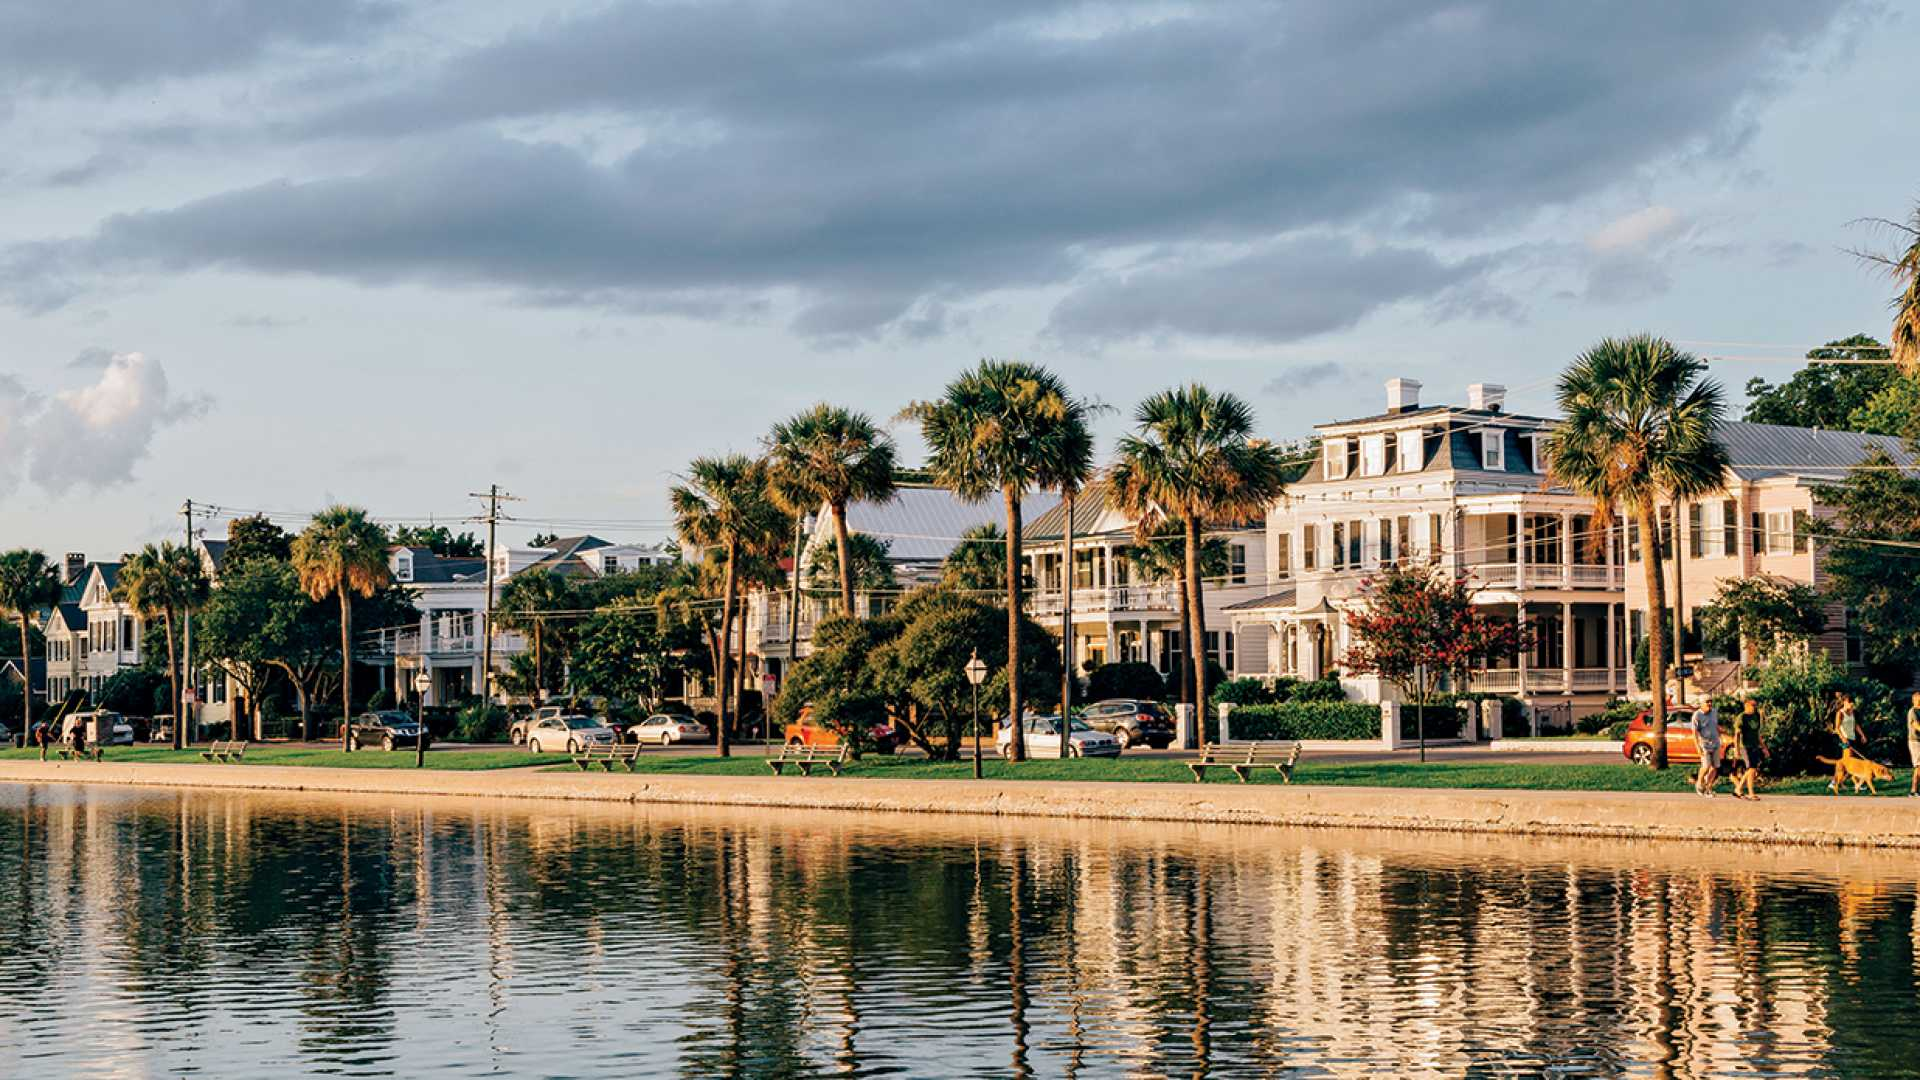 With a tree-lined waterfront and serious historic charm, Charleston, South Carolina, is a hospitality juggernaut. It ranks highest of all 50 Surge Cities in net business creation.